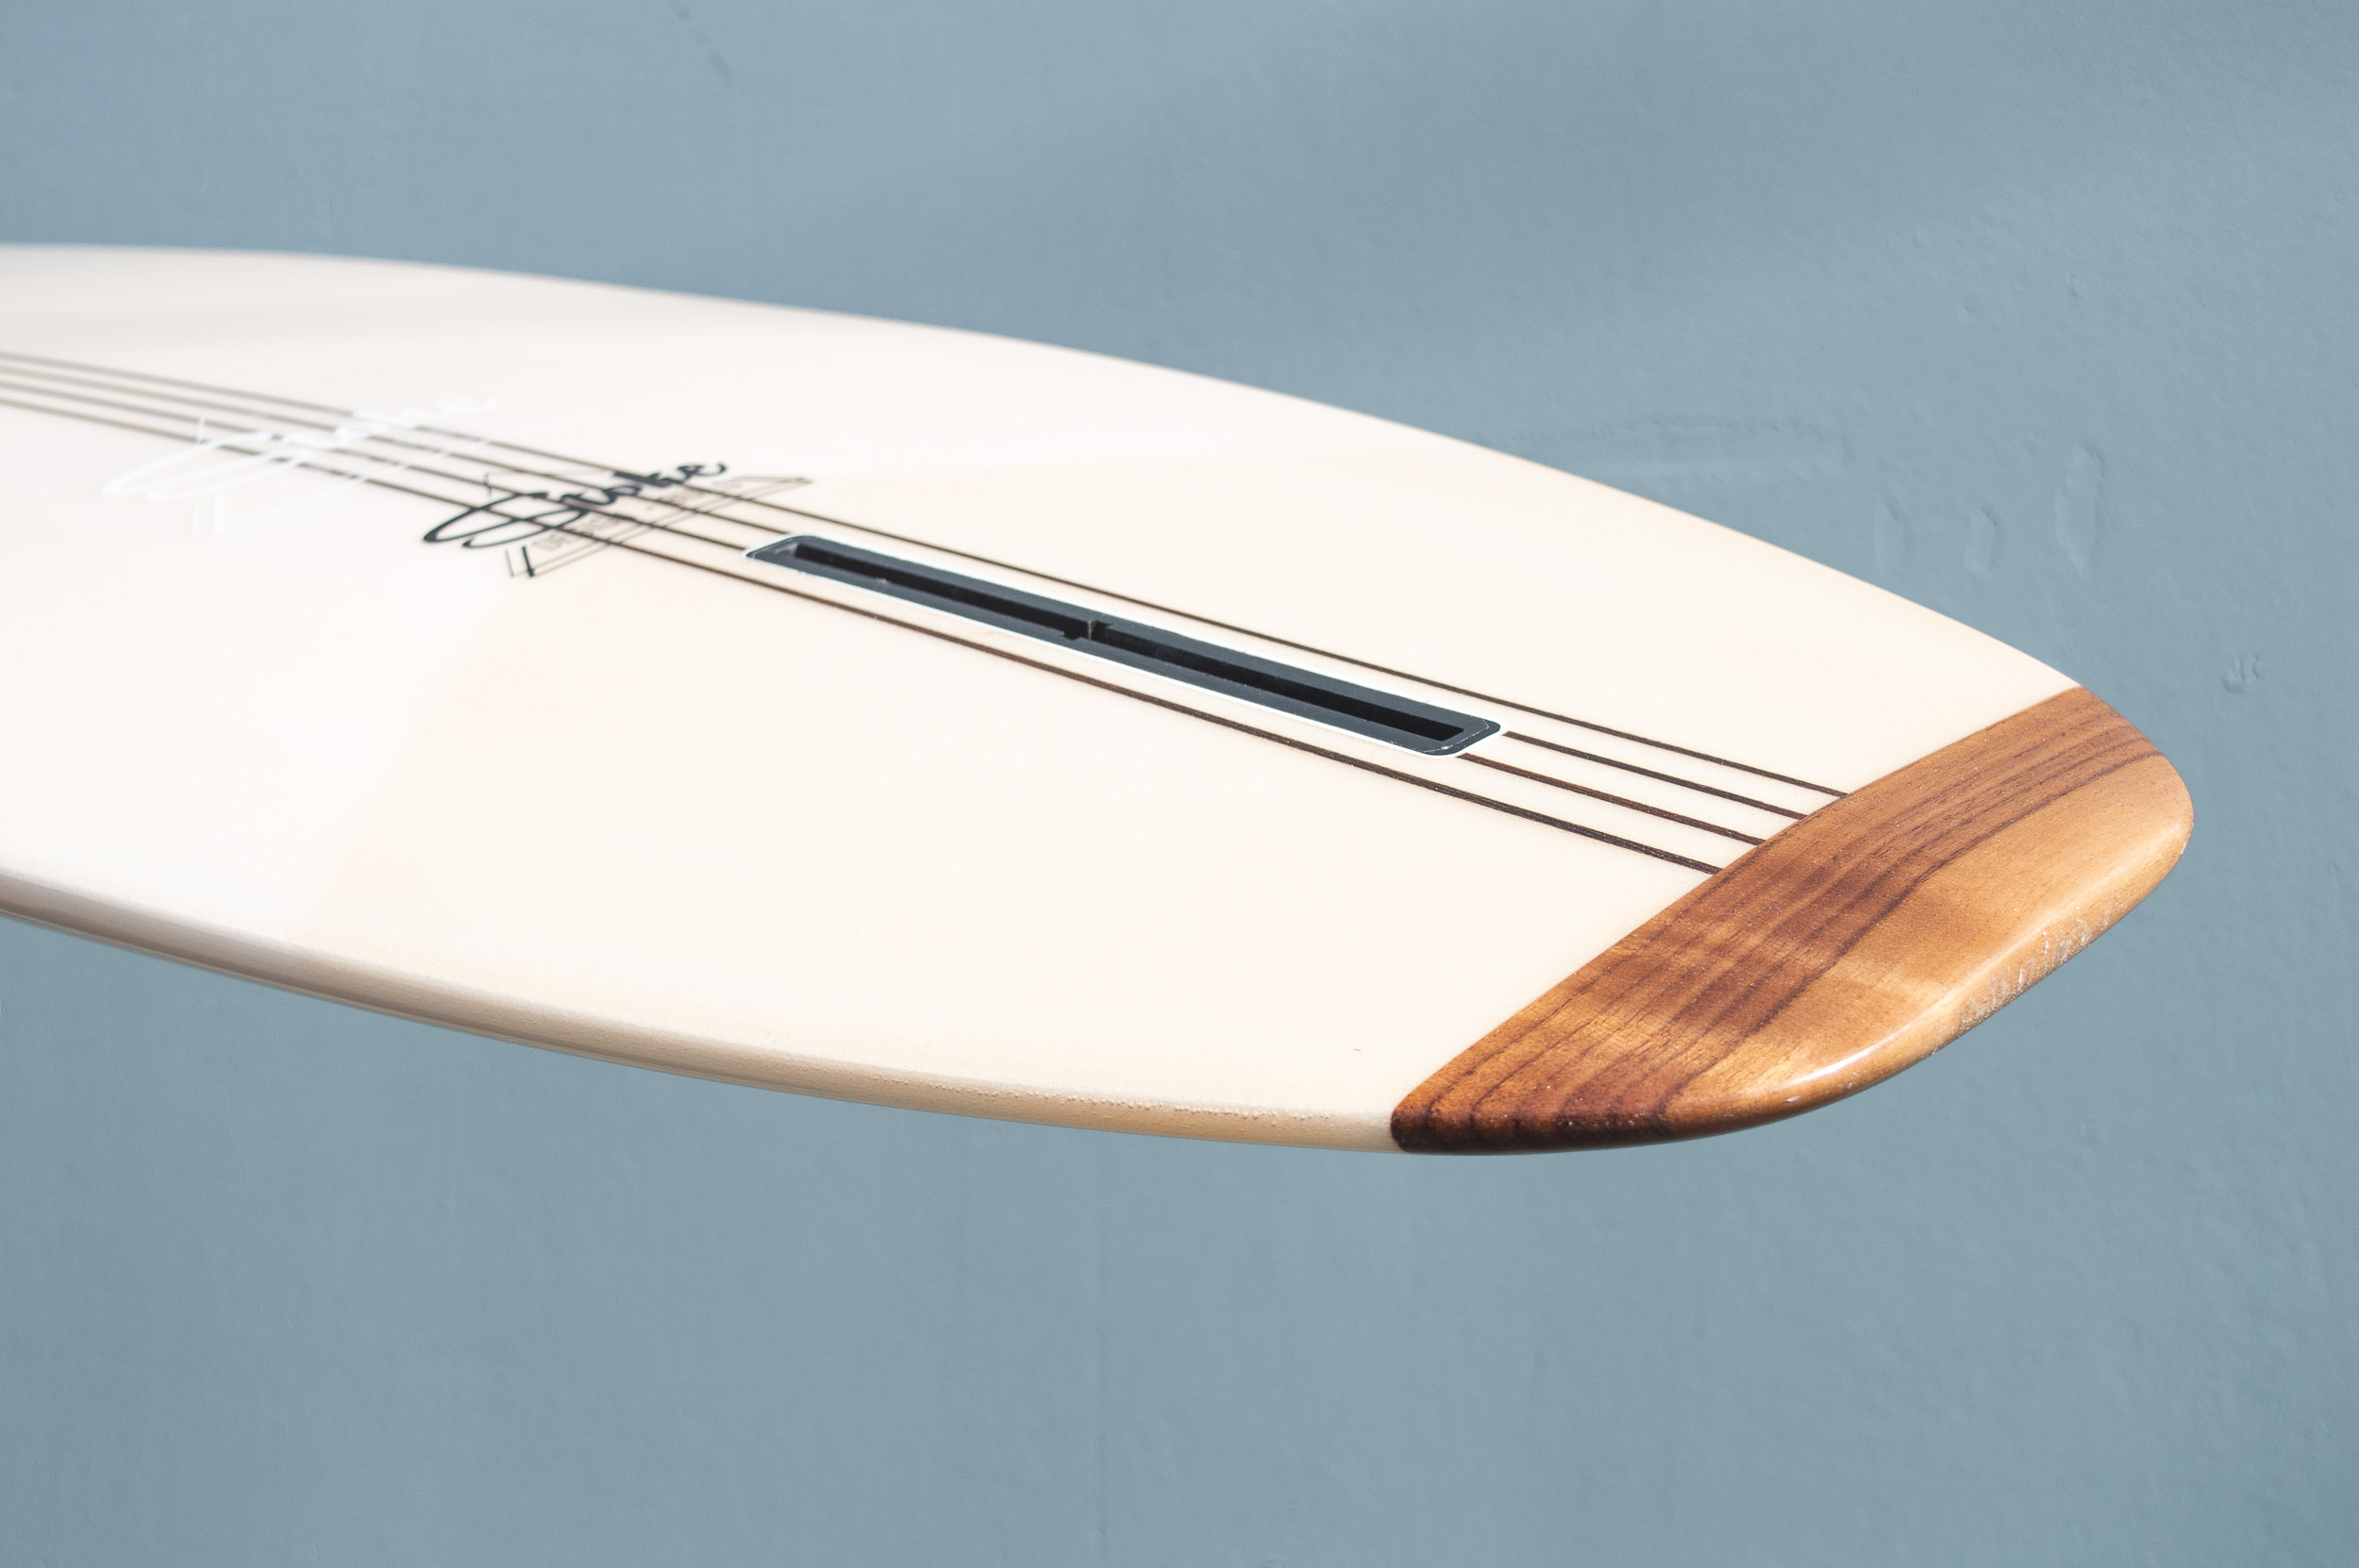 ORDER YOUR OWN HANDCRAFTED STOKE -